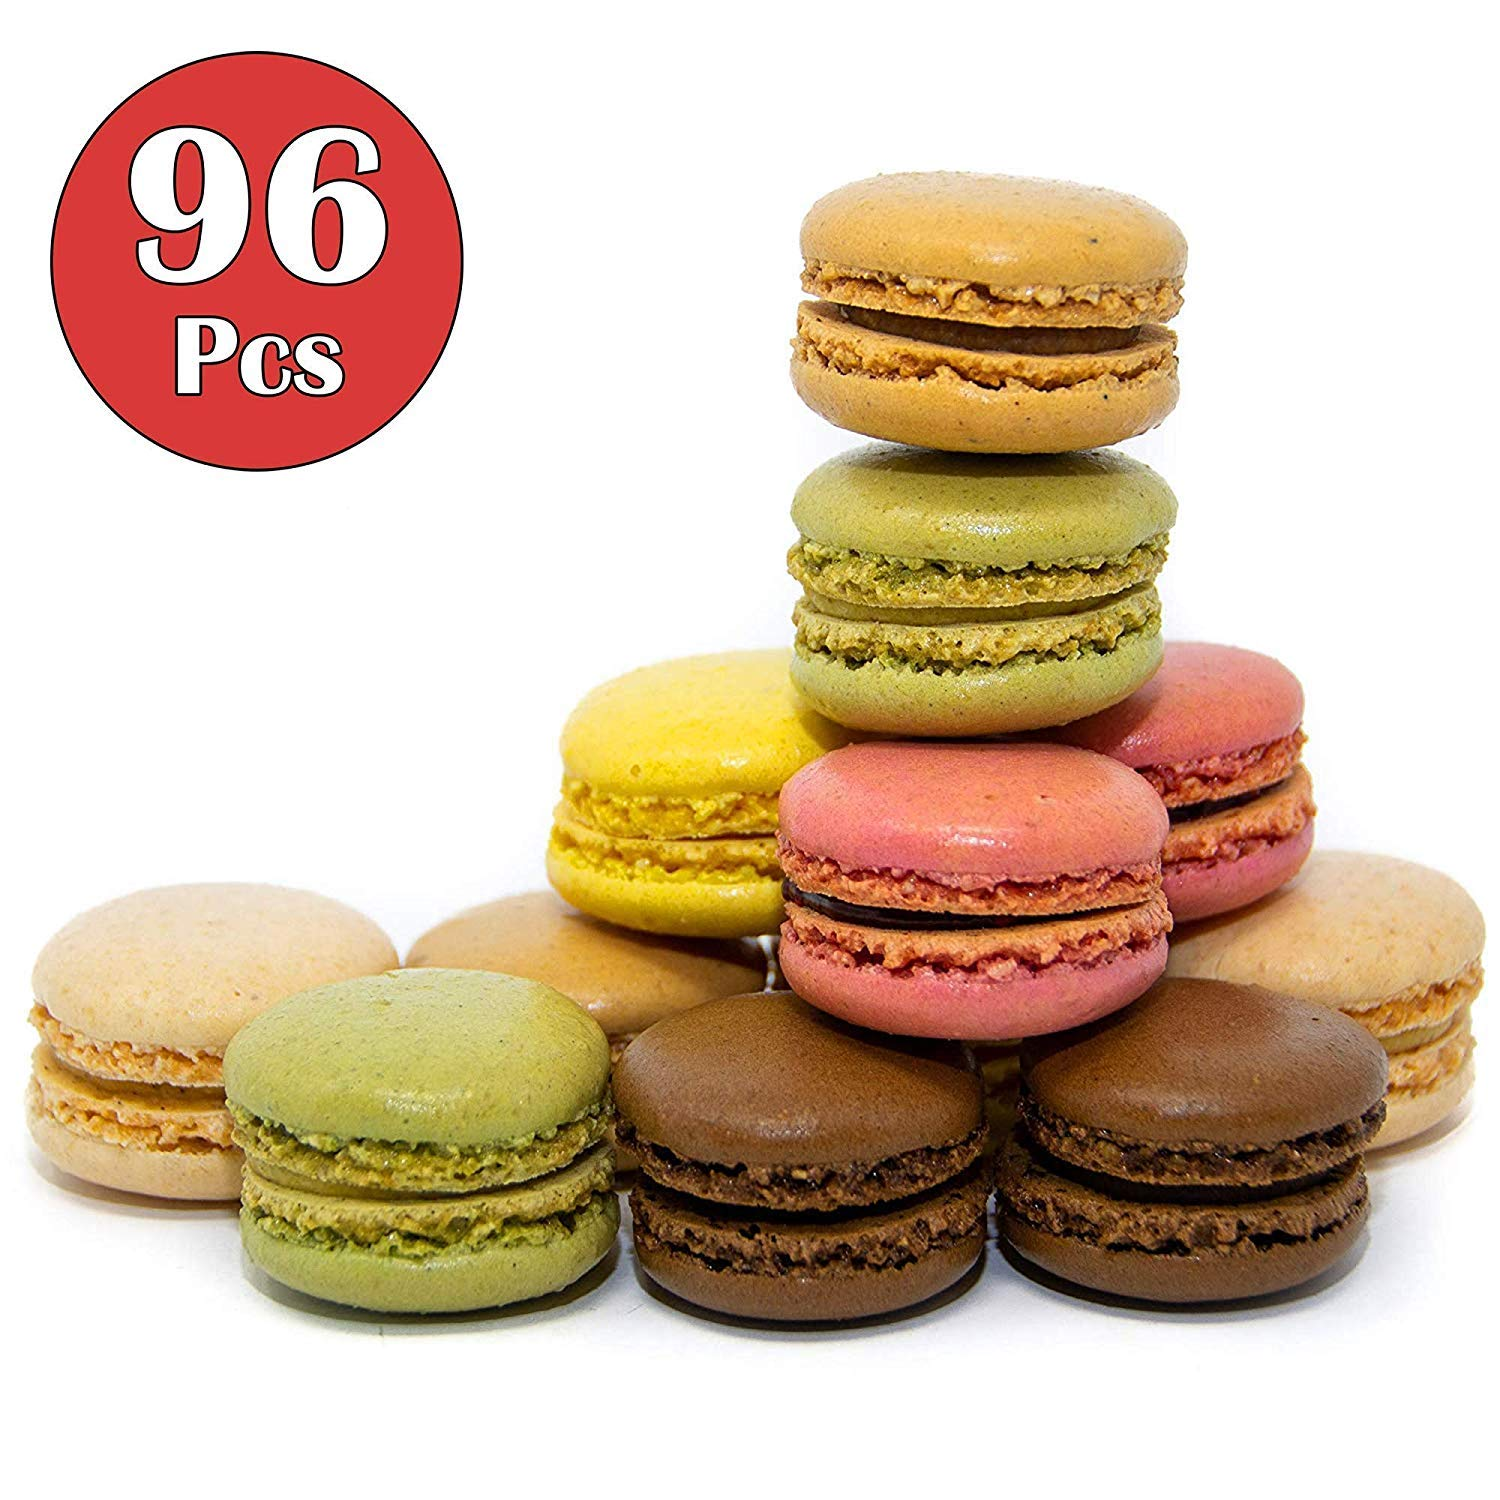 French Almond Macarons Gift - 96 pcs - Assorted Macaroons Cookies - Imported From France